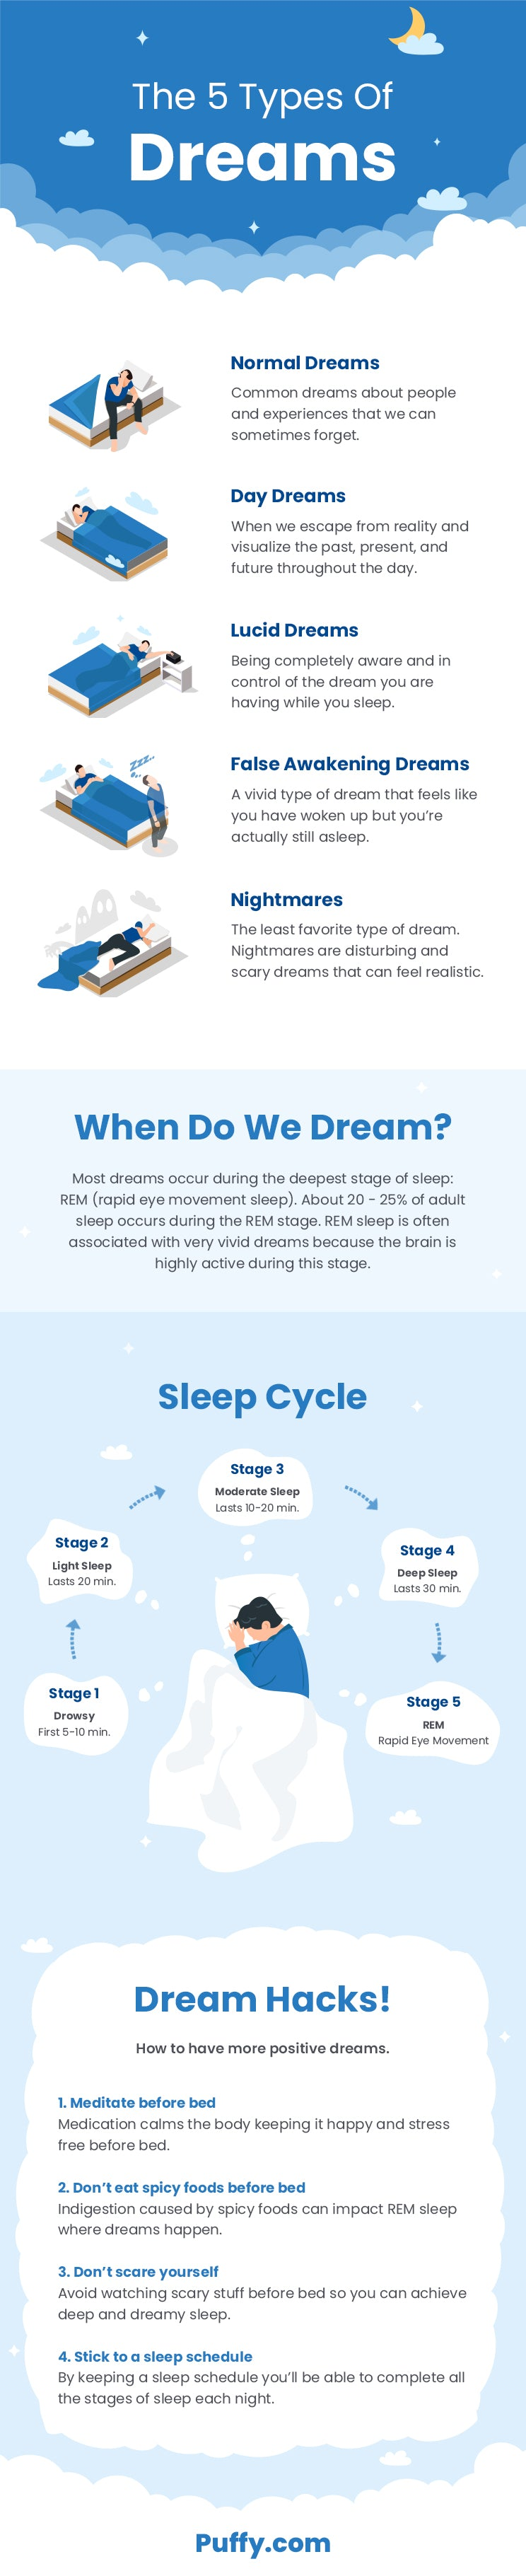 The 5 Type of Dreams